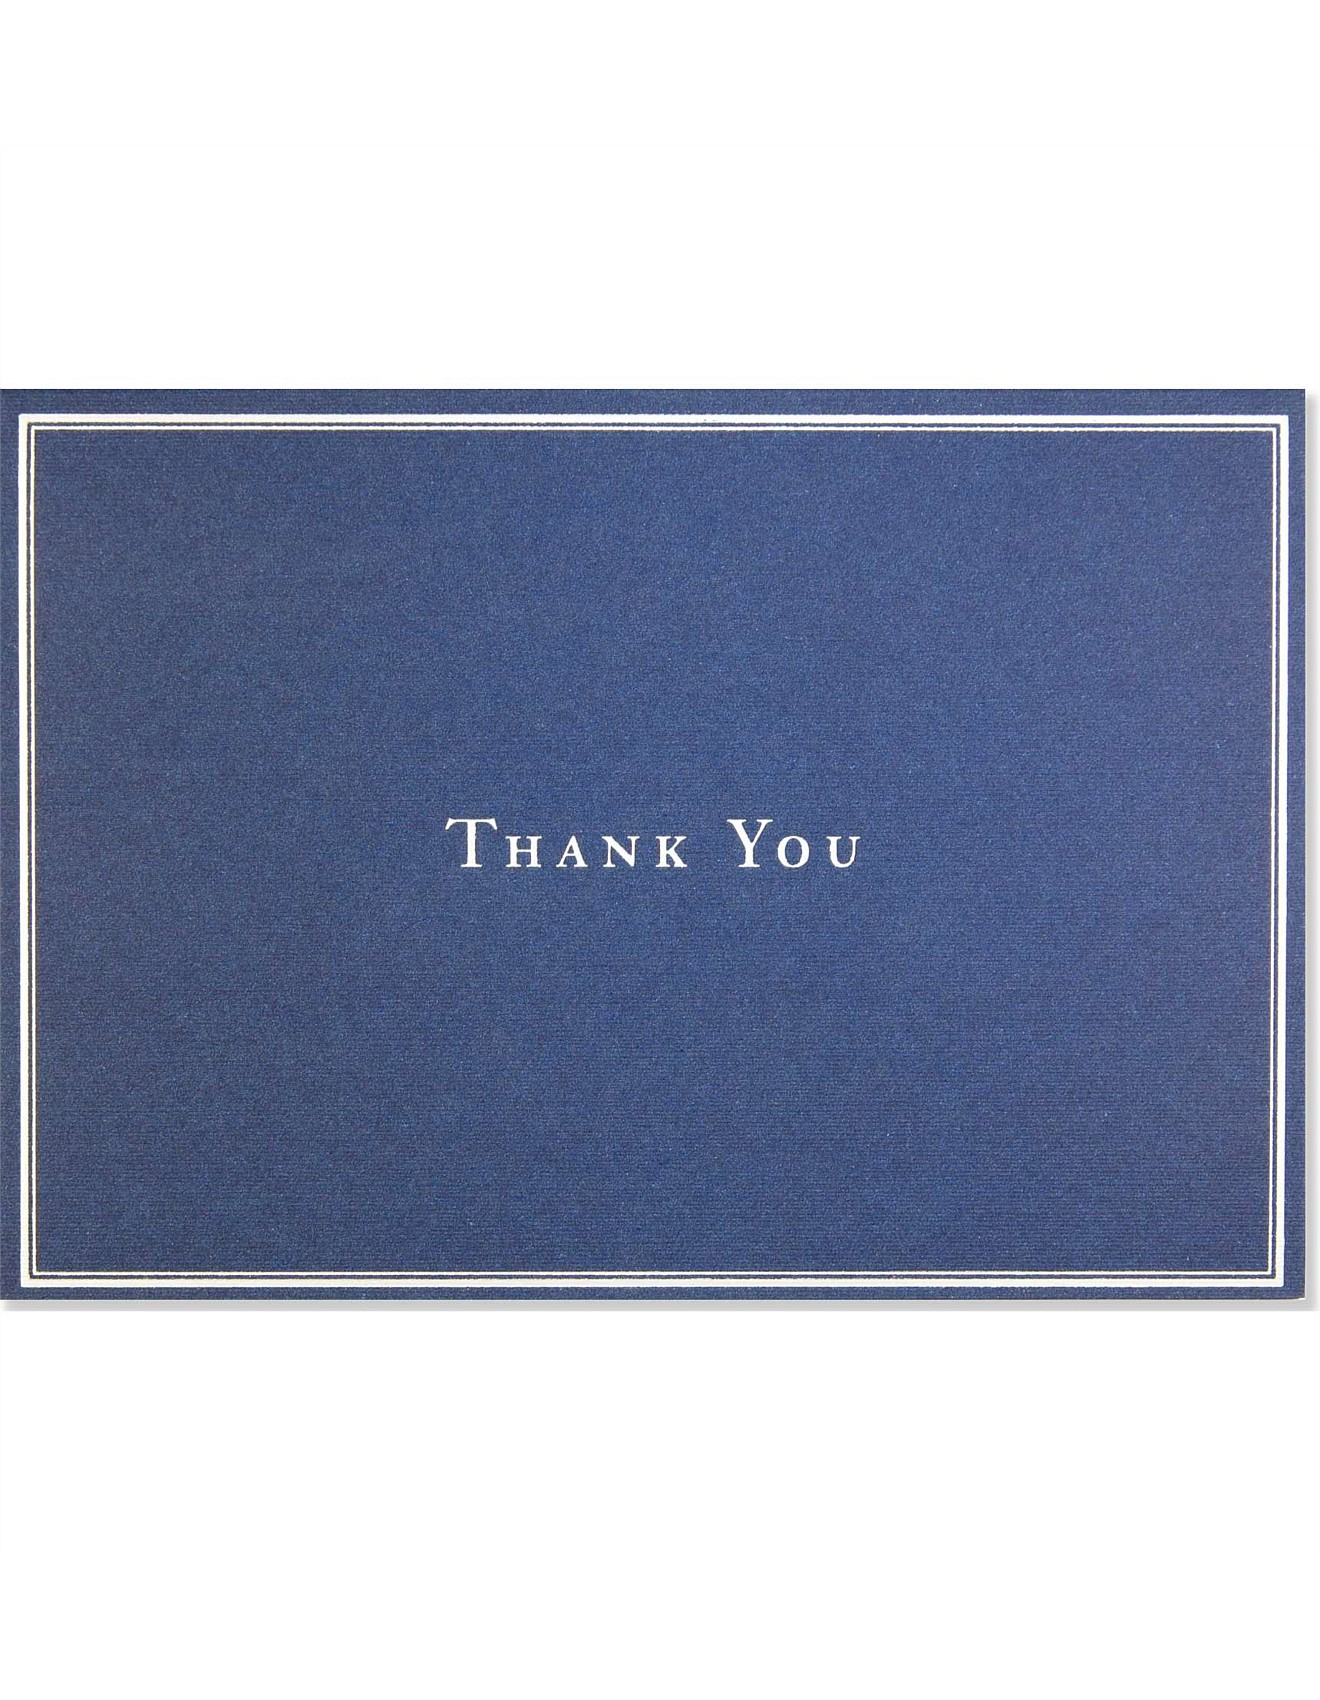 14 Pack Silver Navy Thankyou Cards